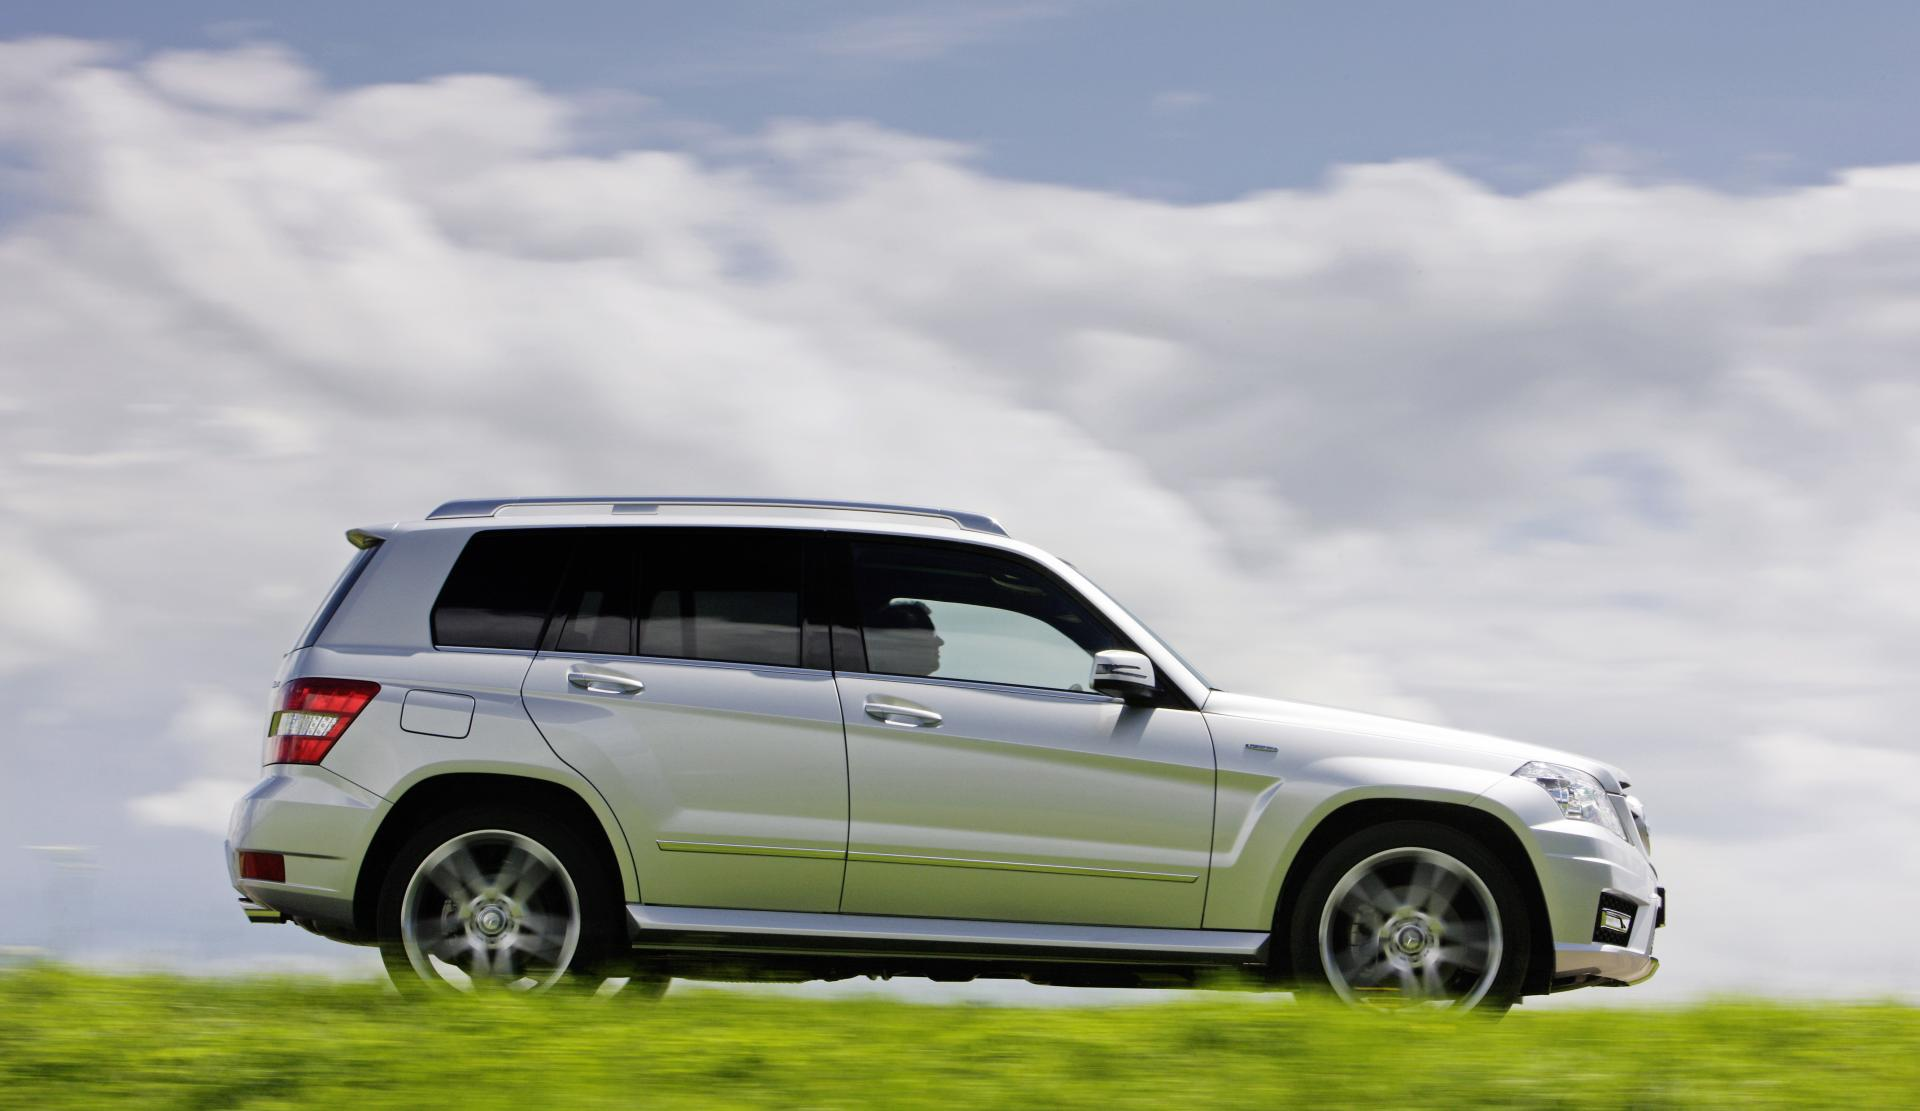 2012 mercedes benz glk class news and information for 2010 mercedes benz glk 350 recalls